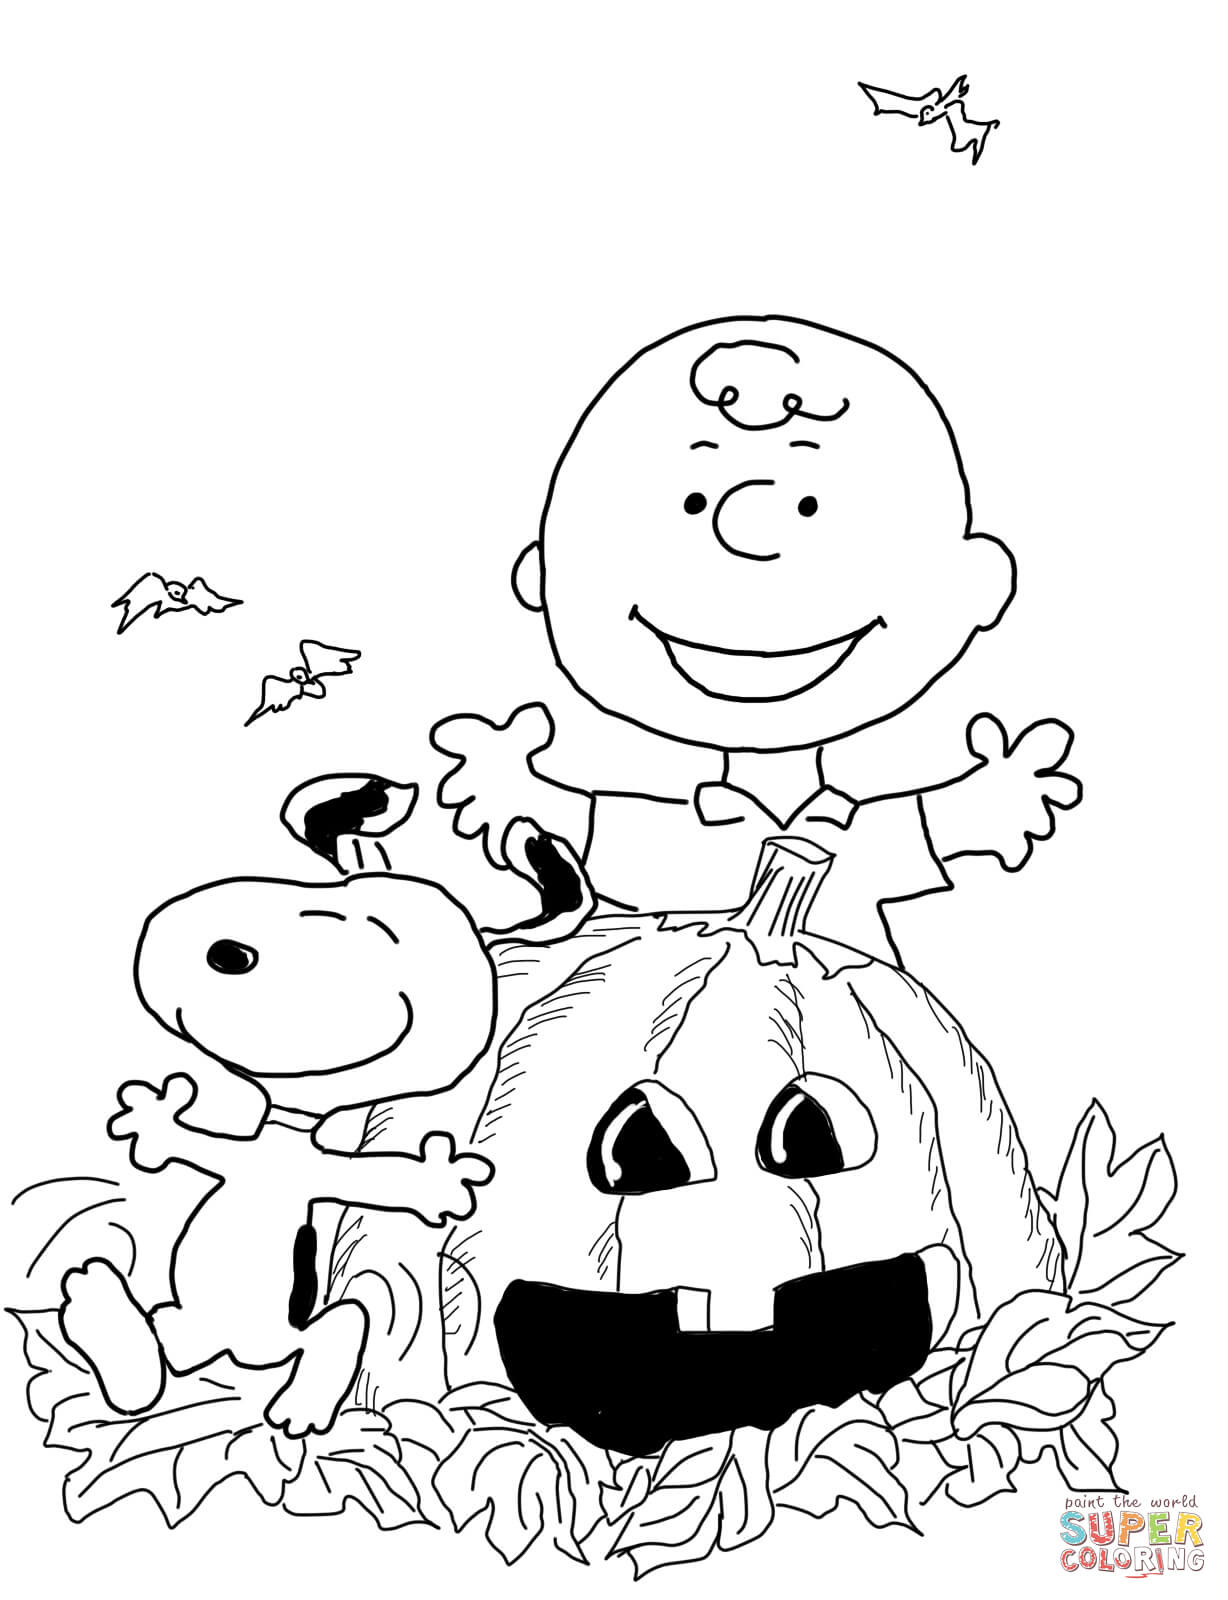 Charlie Brown Halloween Coloring Page | Free Printable Coloring Pages - Free Printable Charlie Brown Halloween Coloring Pages